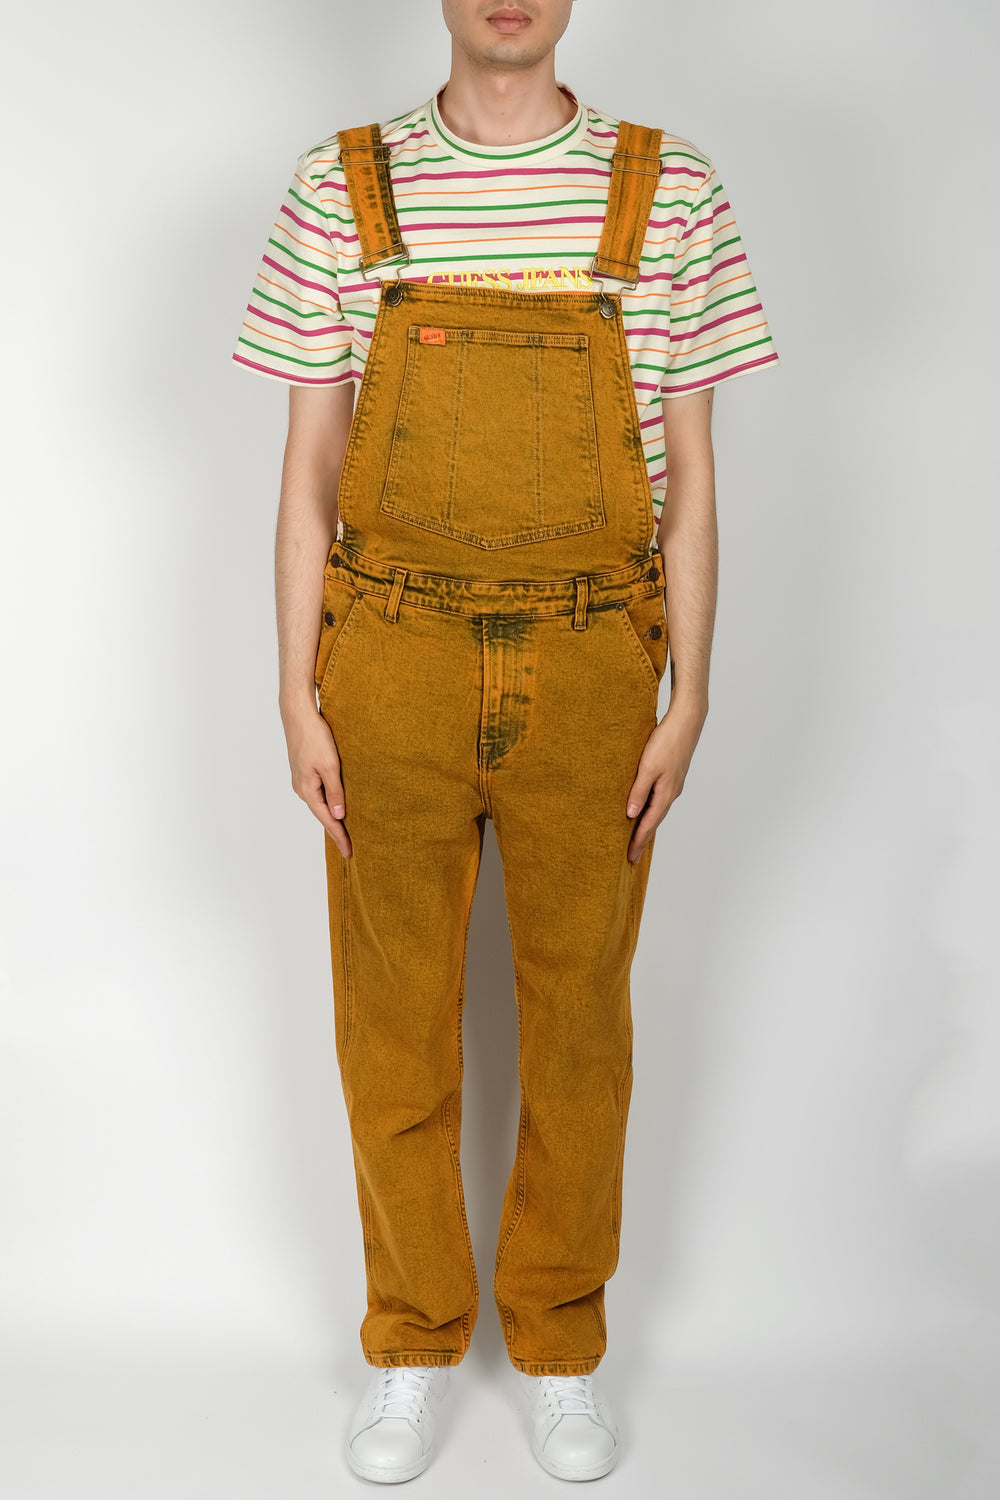 GUESS Indigo Color Acid Wash Overall In Orange